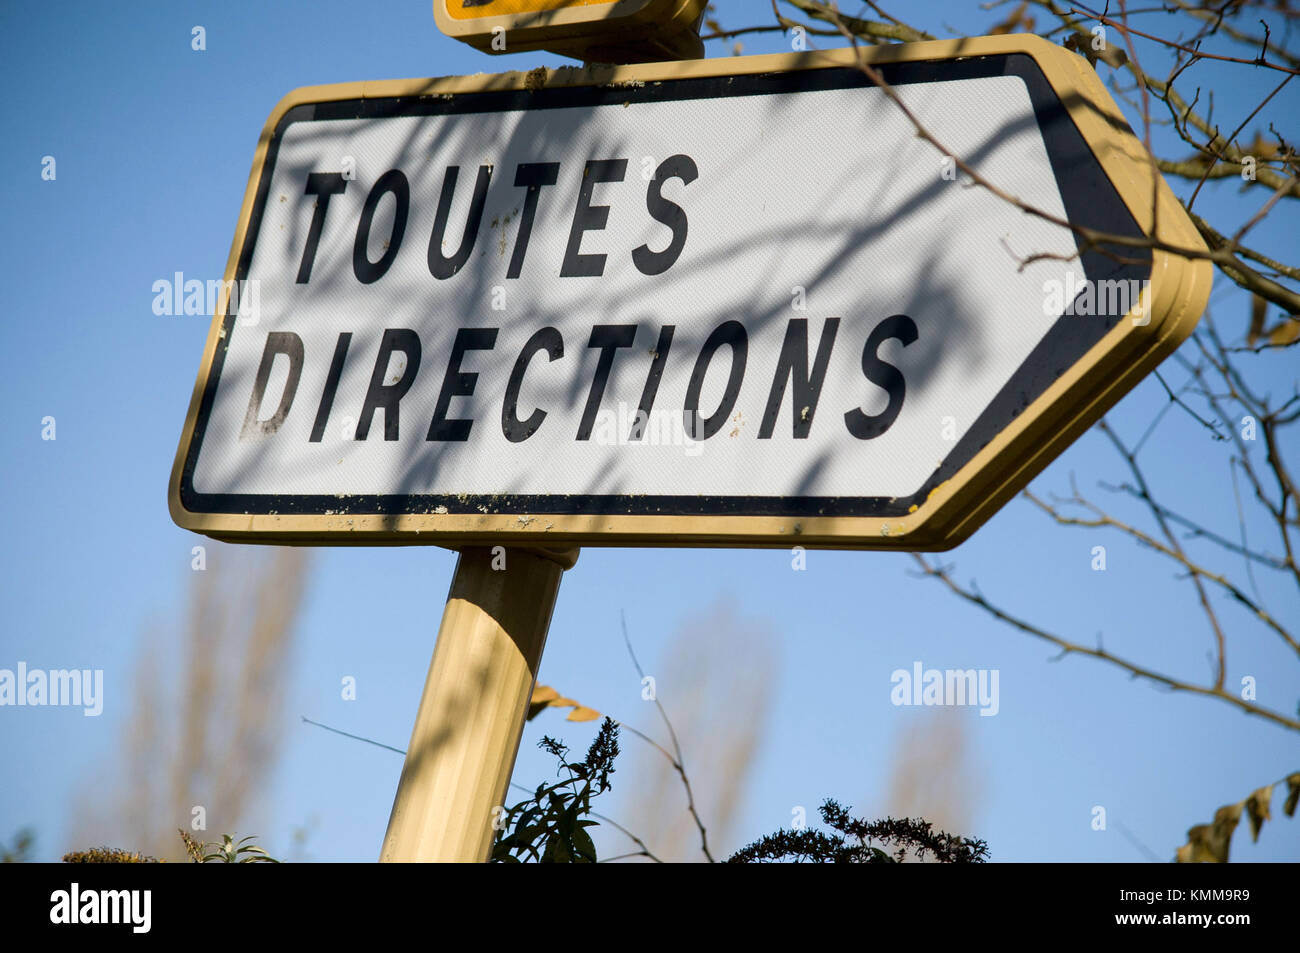 Toute Directions sign, Cazals, France - Stock Image